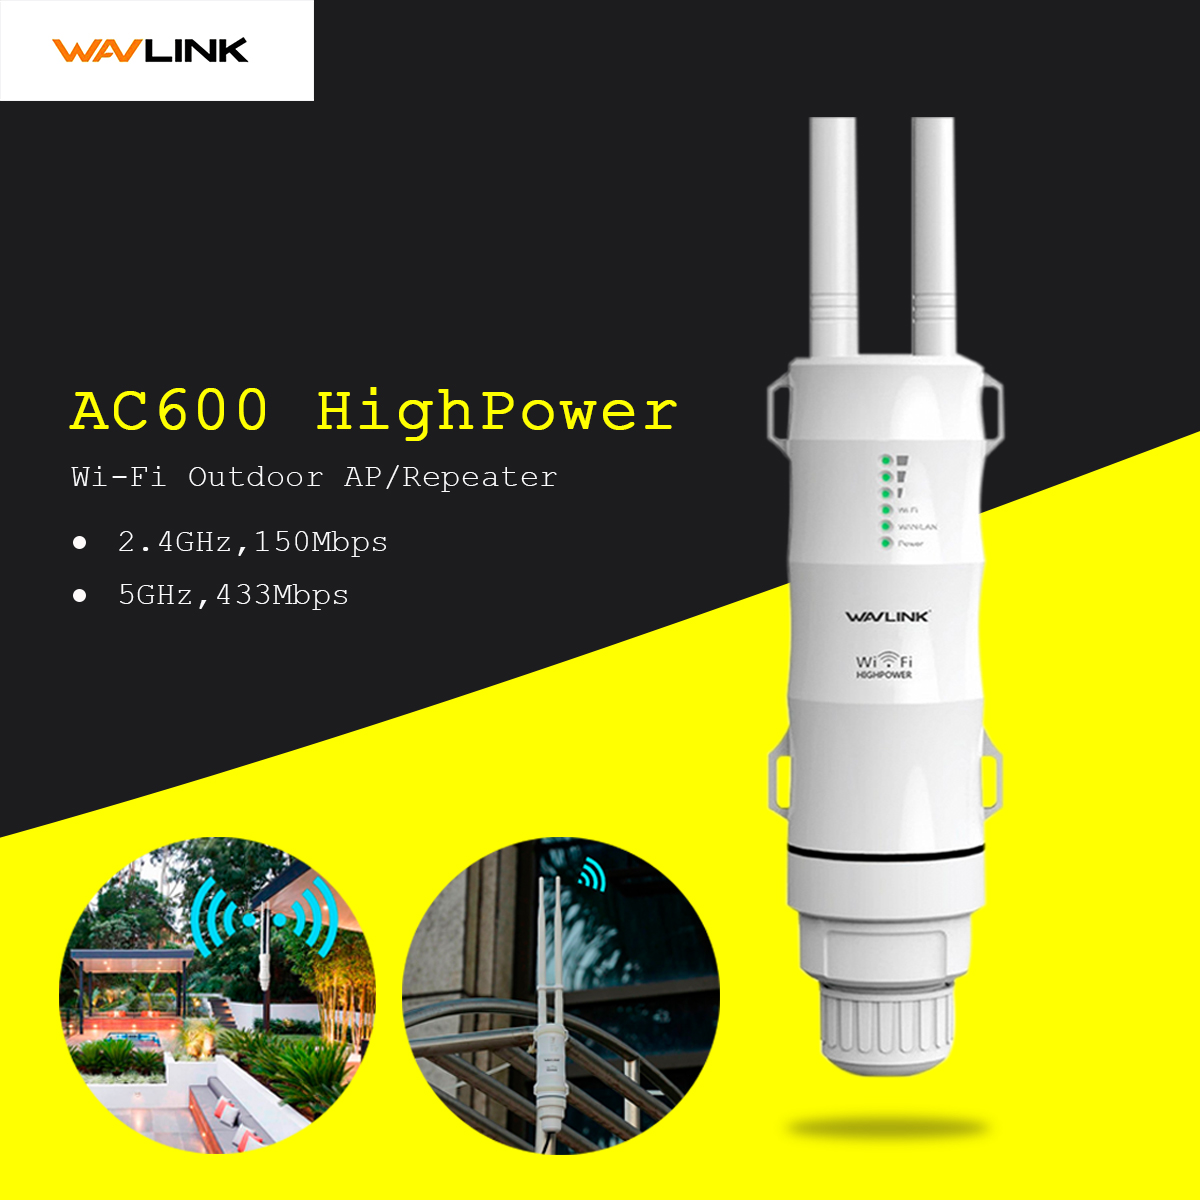 Wavlink AC600 2.4g/5G High Power Outdooor Waterproof WIFI Router/AP Repeater 2 Antennas AU Plug